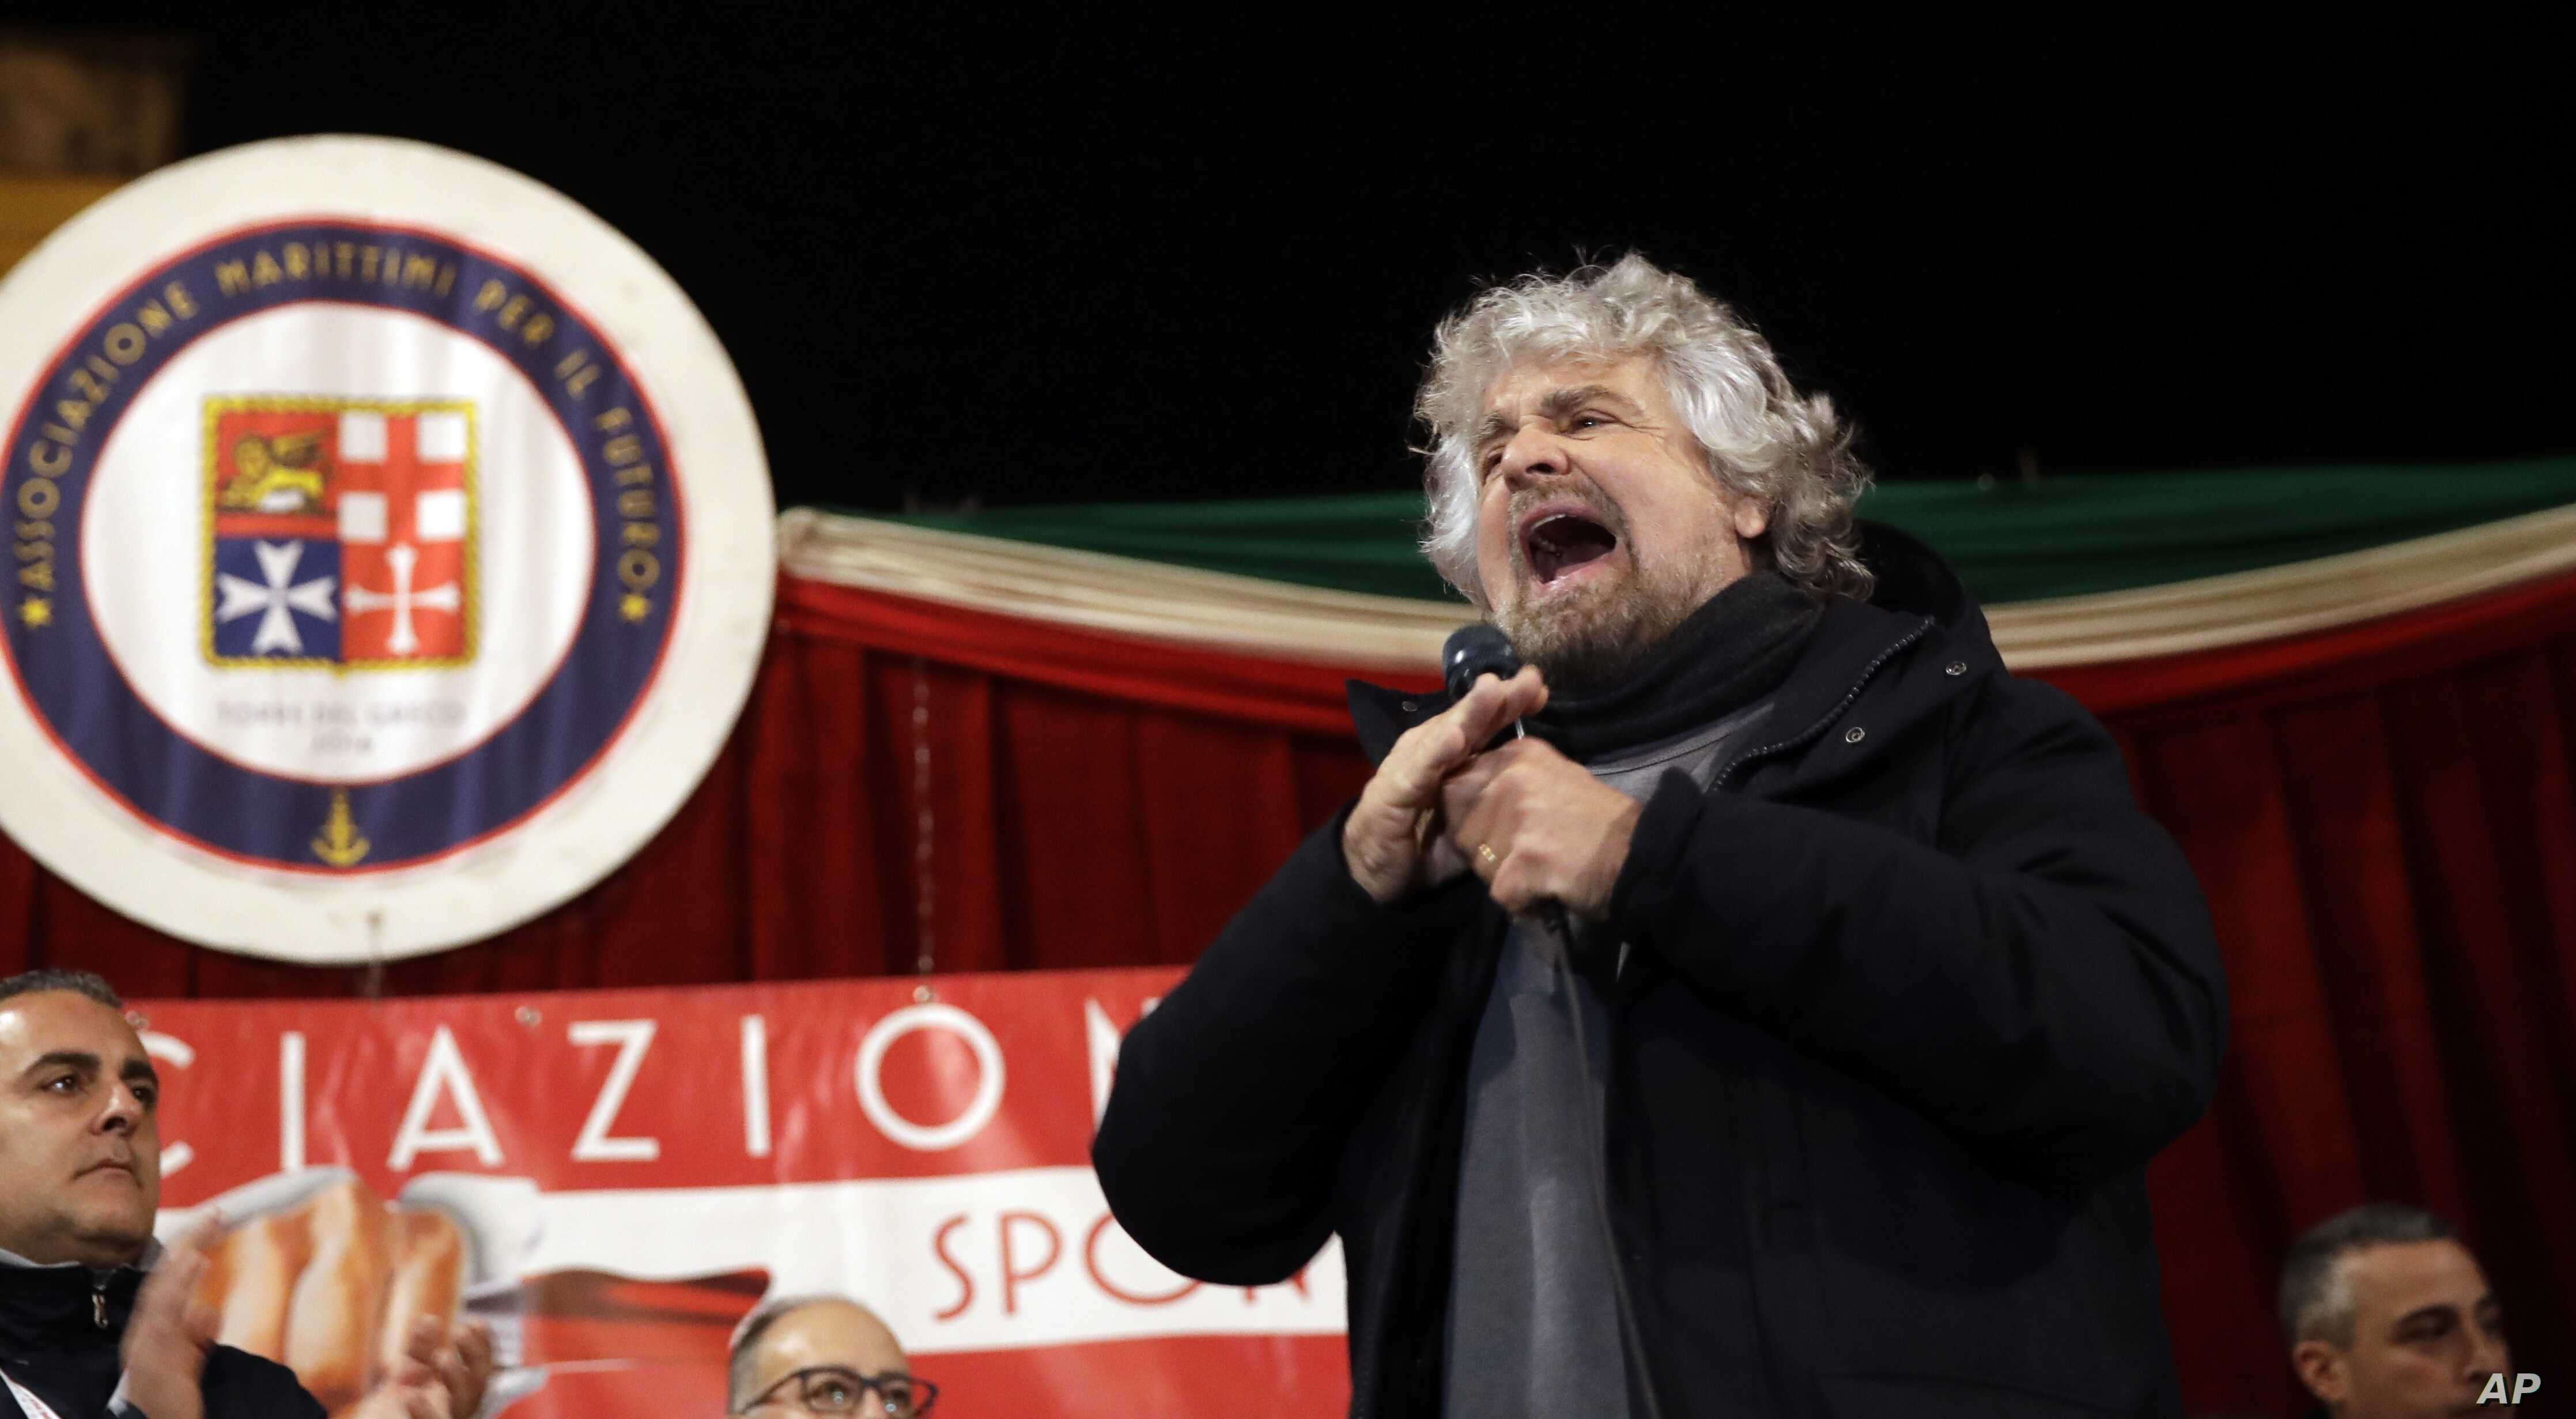 Comic-turned-politician and Five-Star movement's founder Beppe Grillo addresses a rally in Torre del Greco, near Naples, Italy, Feb. 12, 2018.